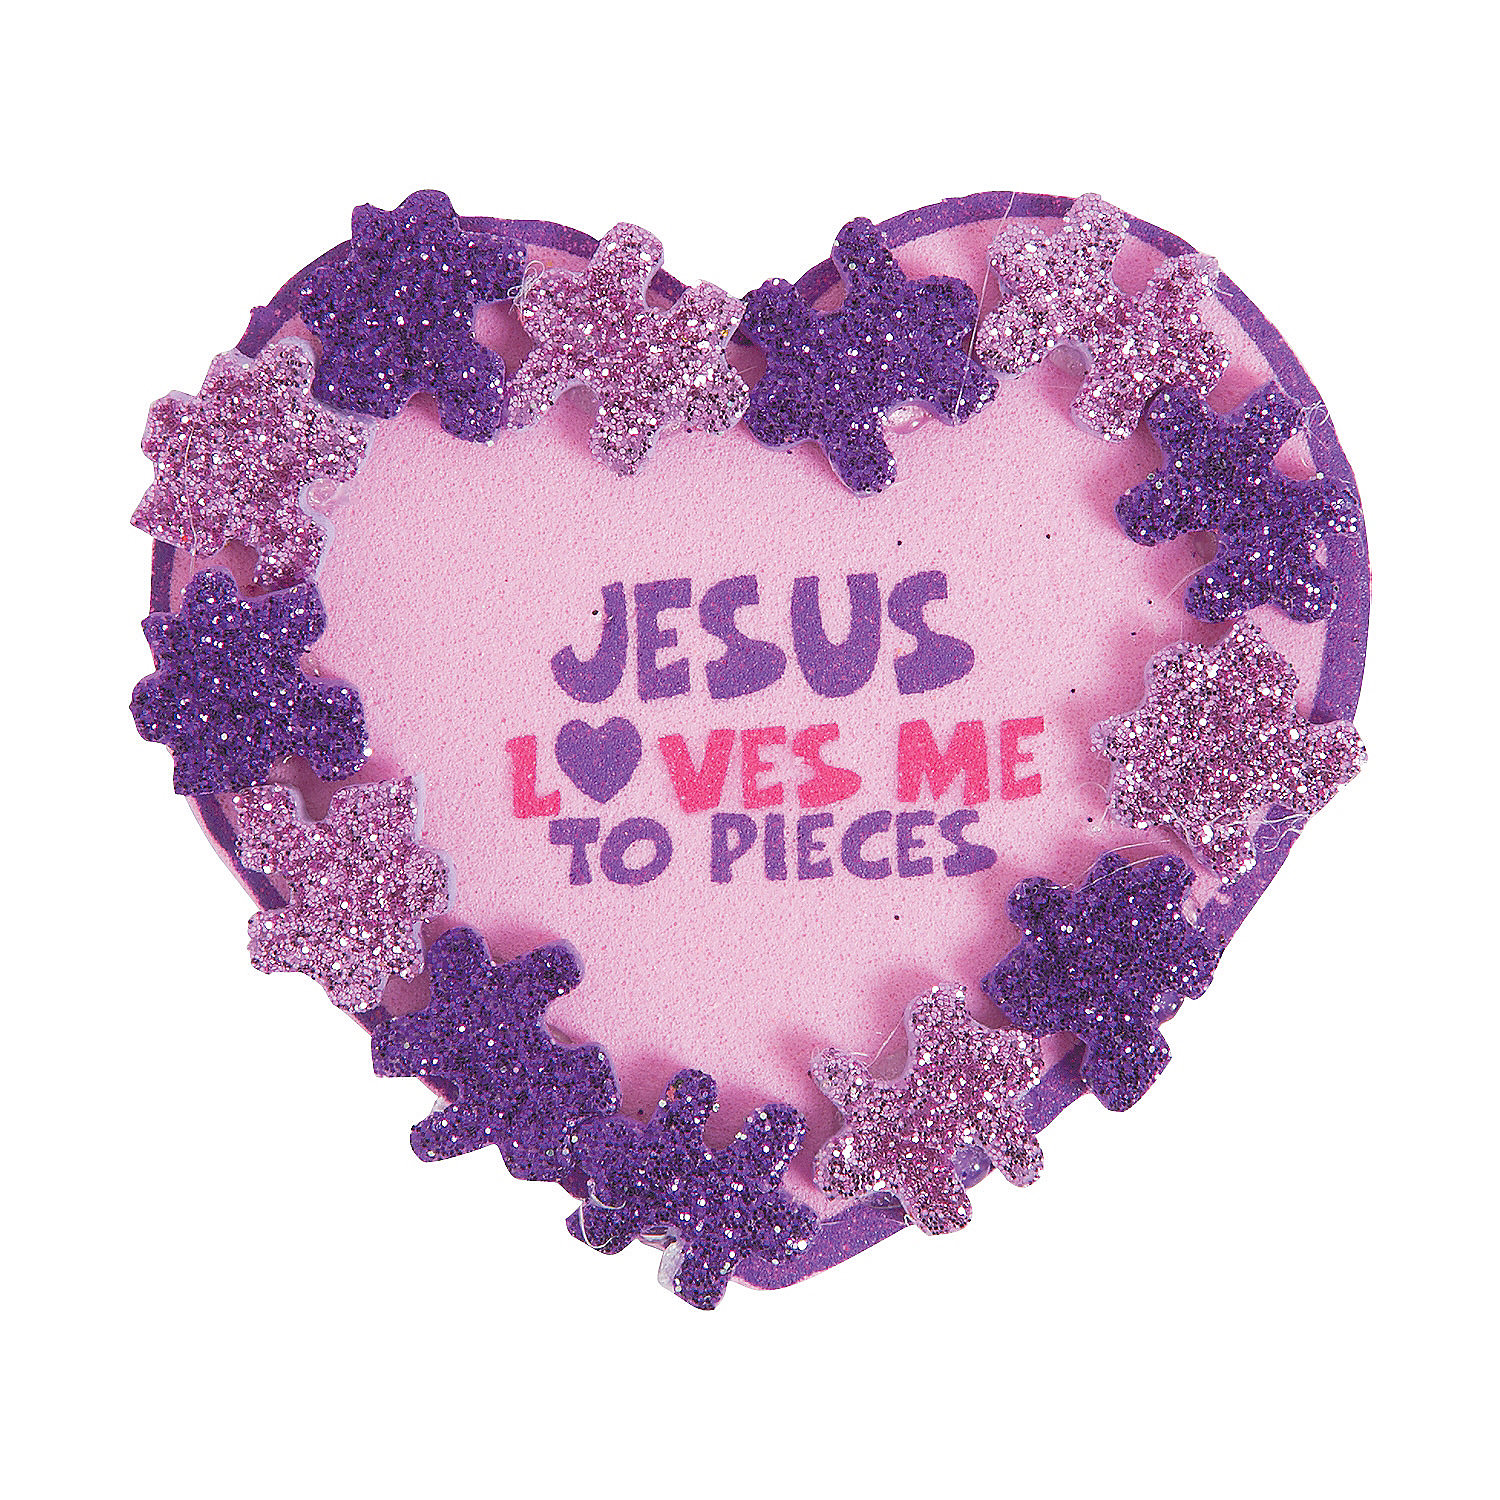 Jesus loves me to pieces pin craft kit jewelry crafts for Kids crafts for church